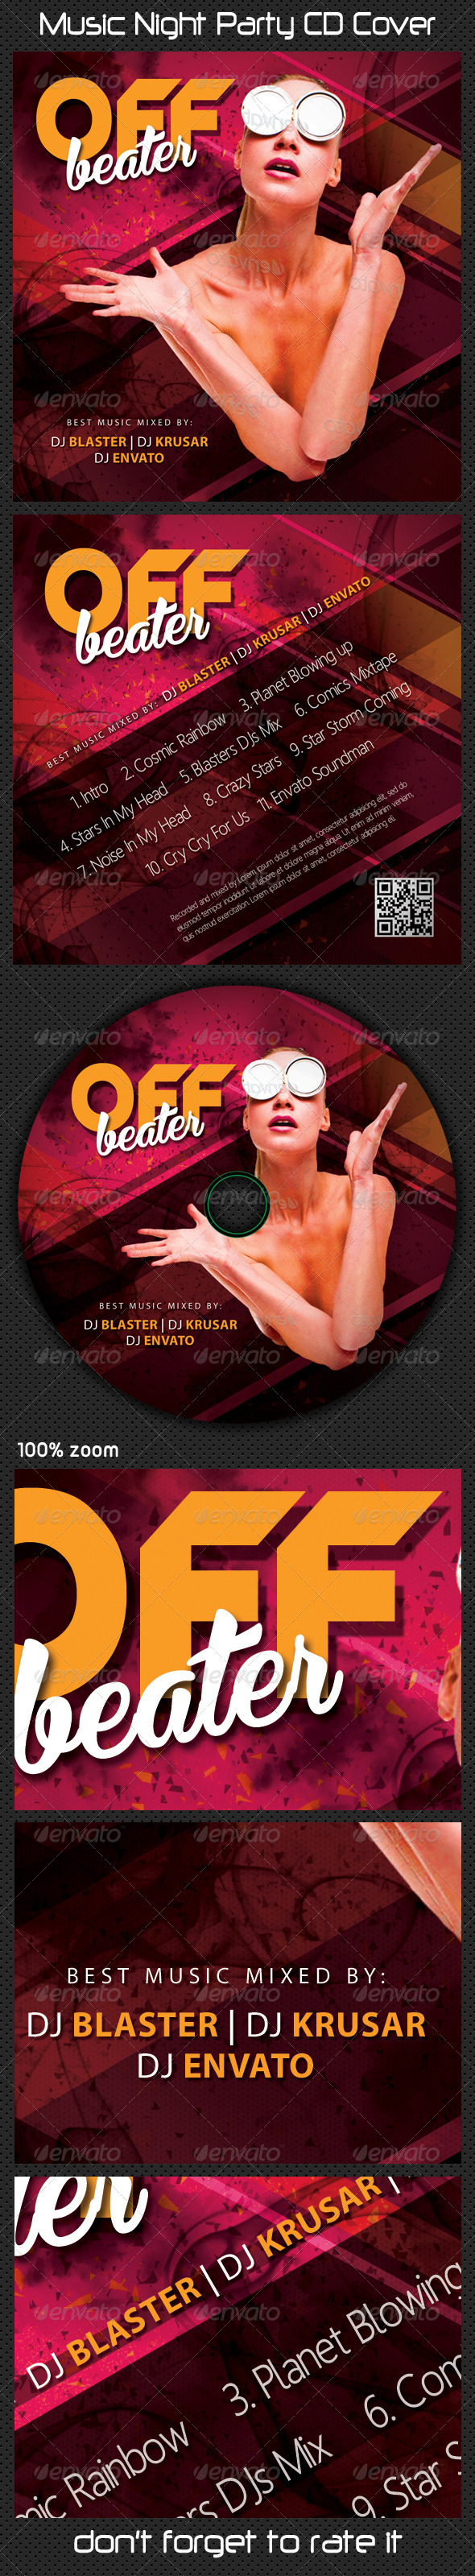 GraphicRiver Music Night Party CD Cover 06 7774707